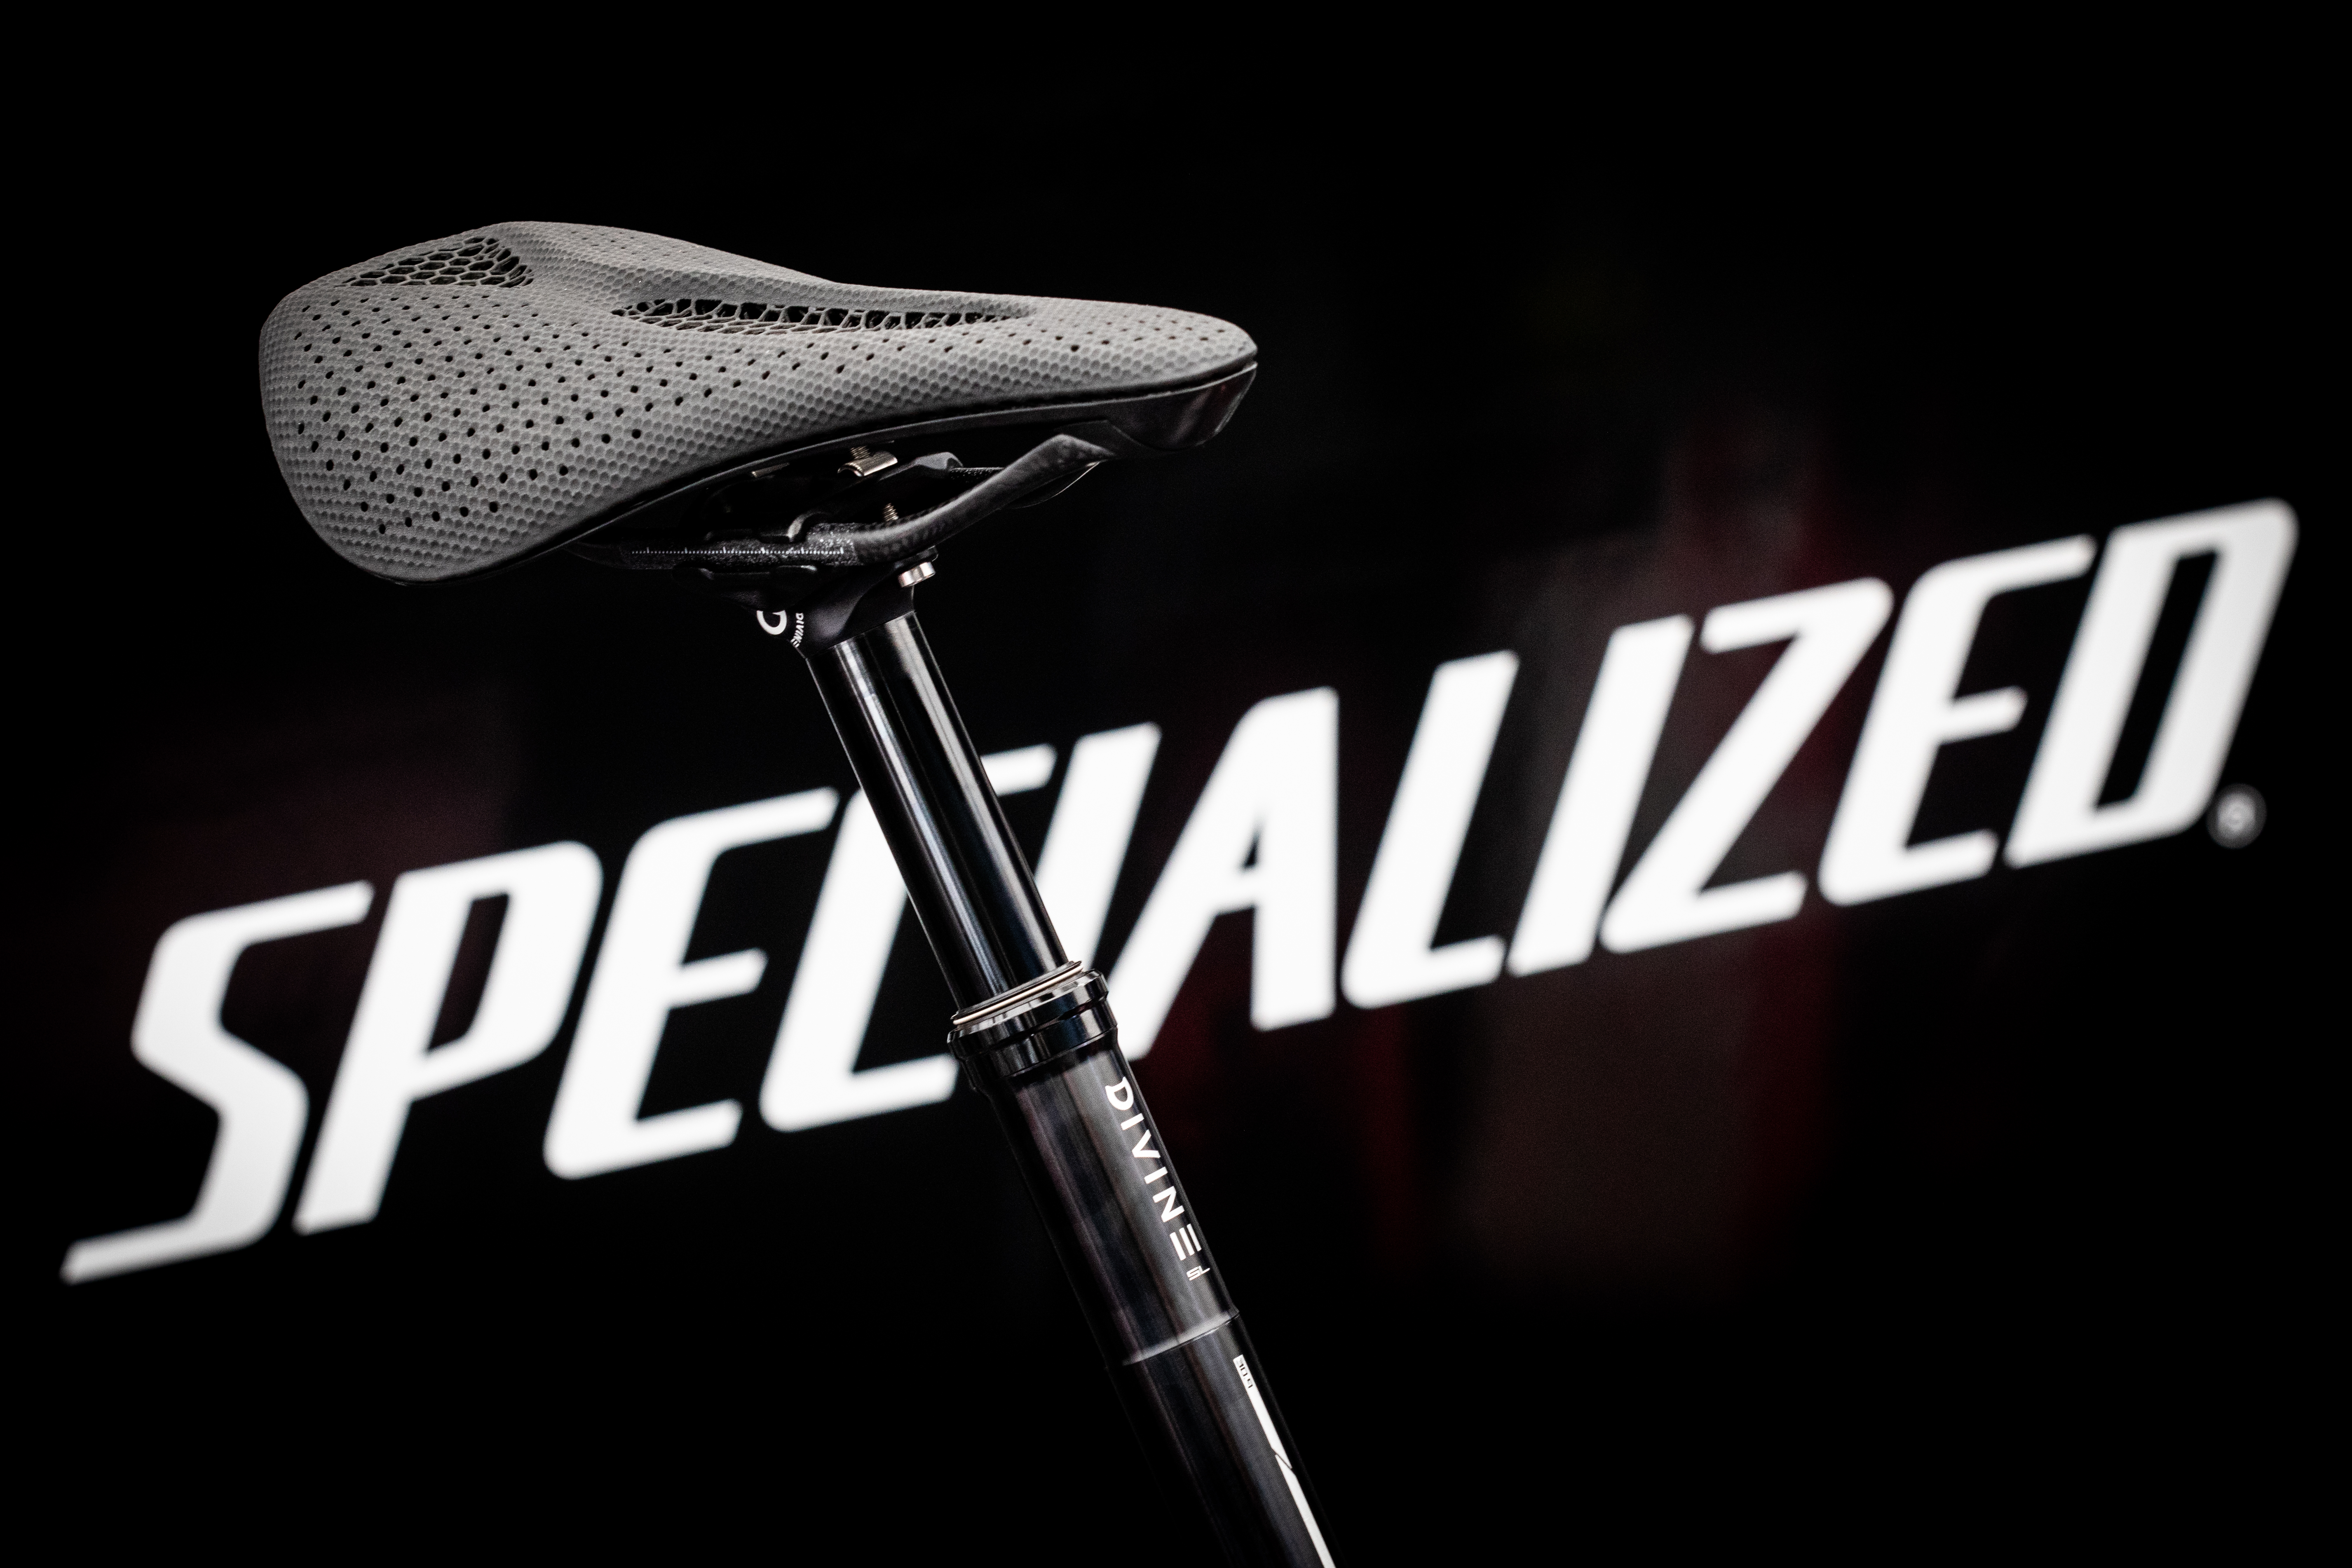 The Specialized S-Works Power Saddle with Mirror Technology made in collaboration with Carbon. Photo via Carbon